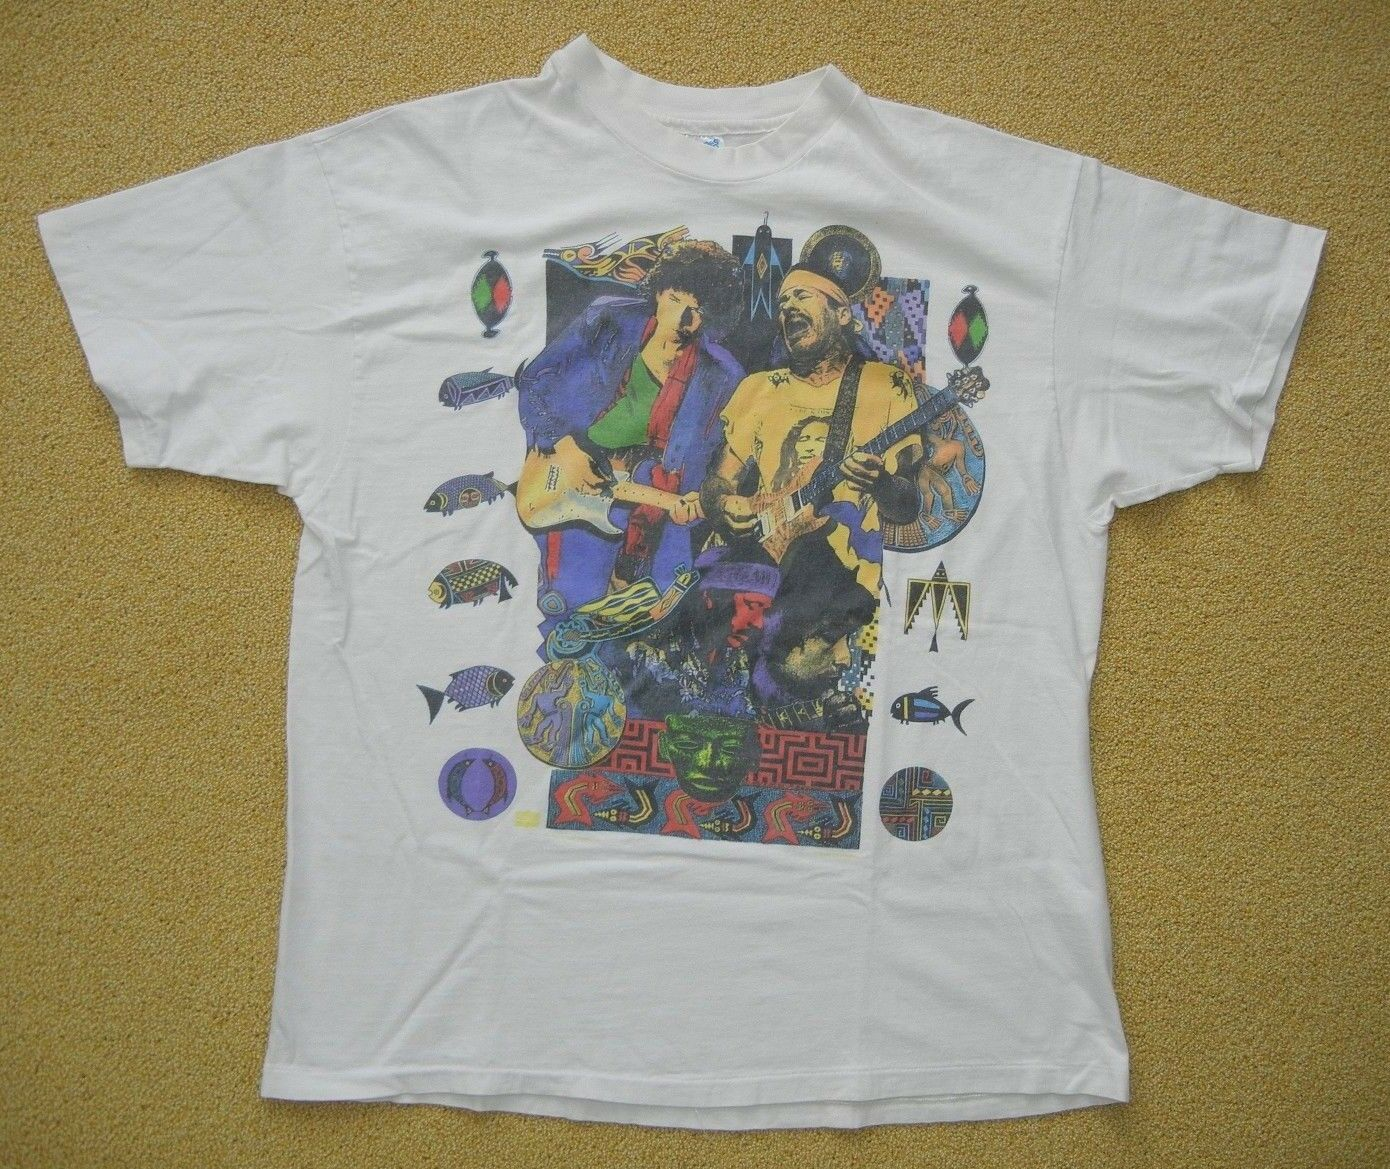 Vtg 90s 1993 BOB DYLAN CARLOS SANTANA Music Album Tour CONCERT T-SHIRT Size XL Summer Short Sleeves Cotton Fashion image